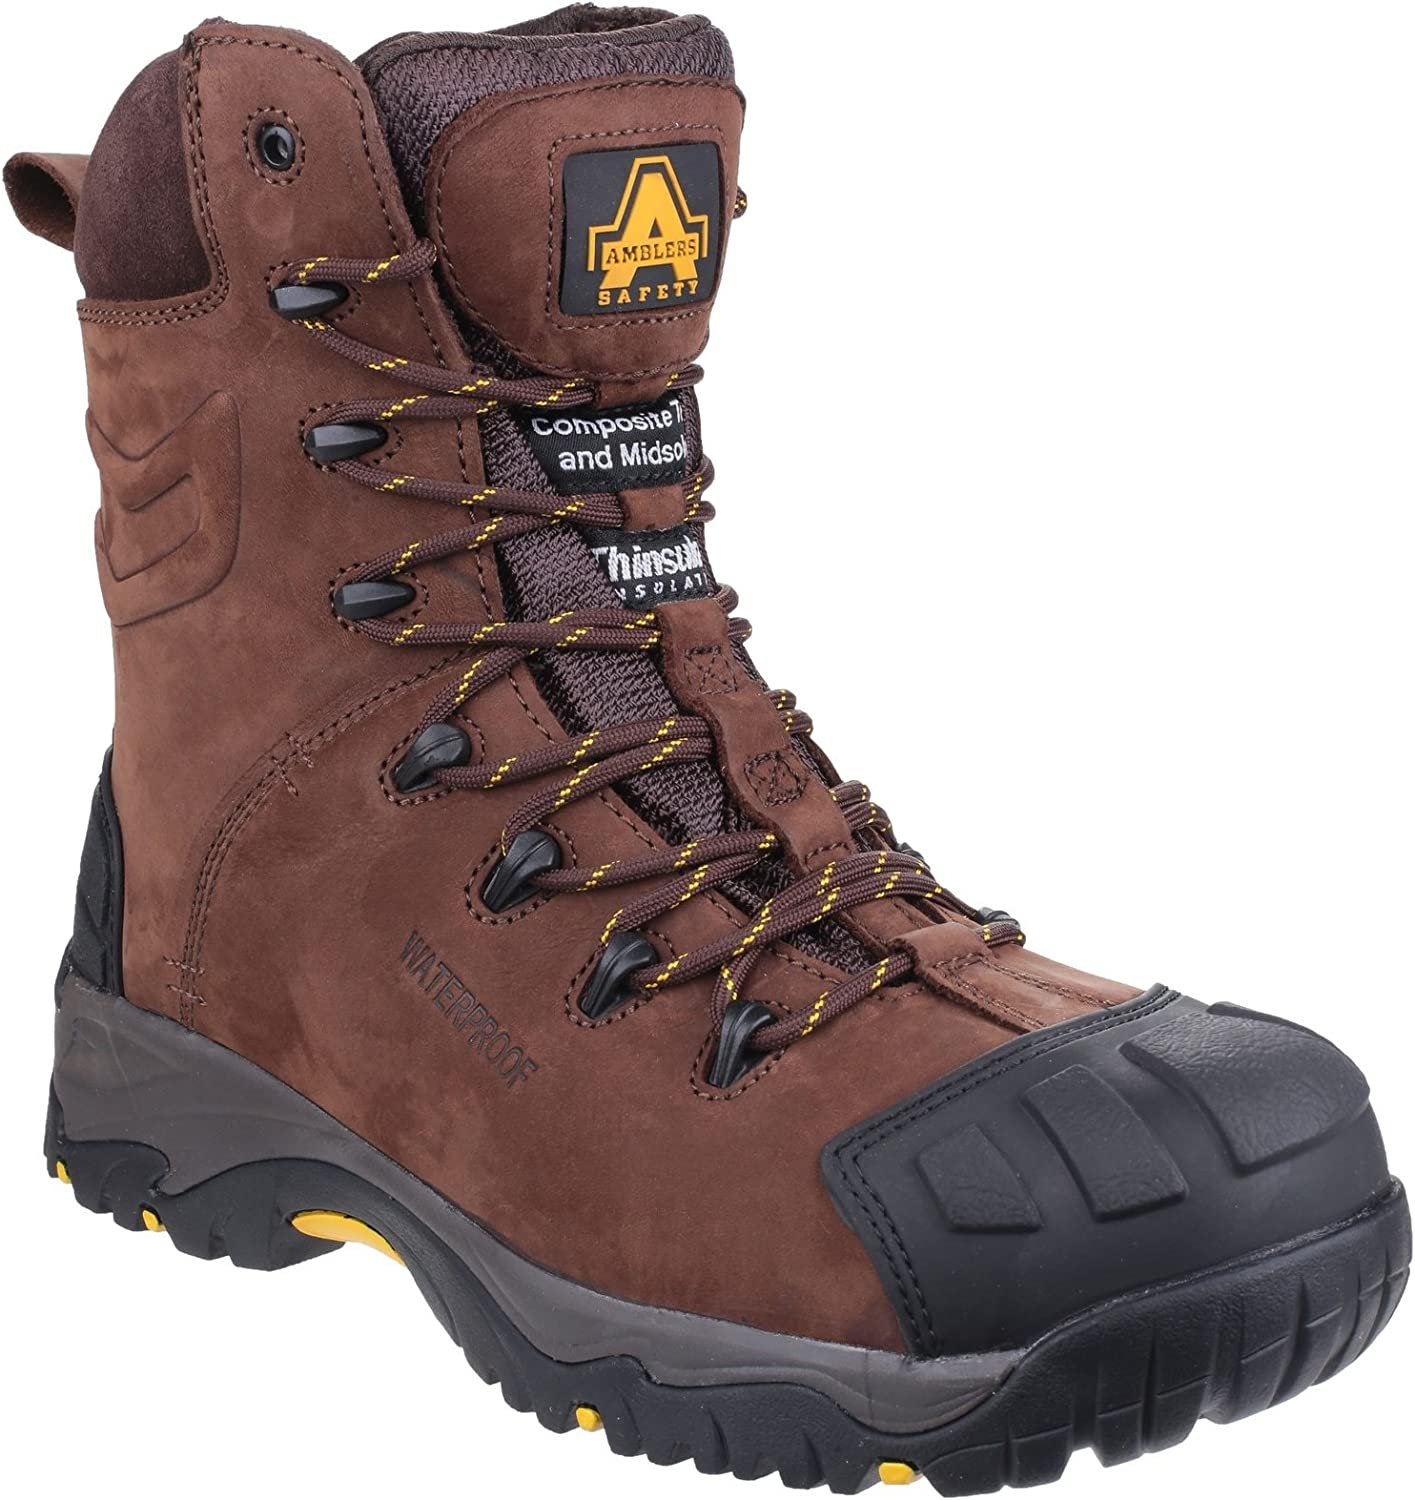 Amblers Safety Mens AS995 Pillar Waterproof Hi-Leg Lace up Safety Boot Brown Size UK 14 EU 48